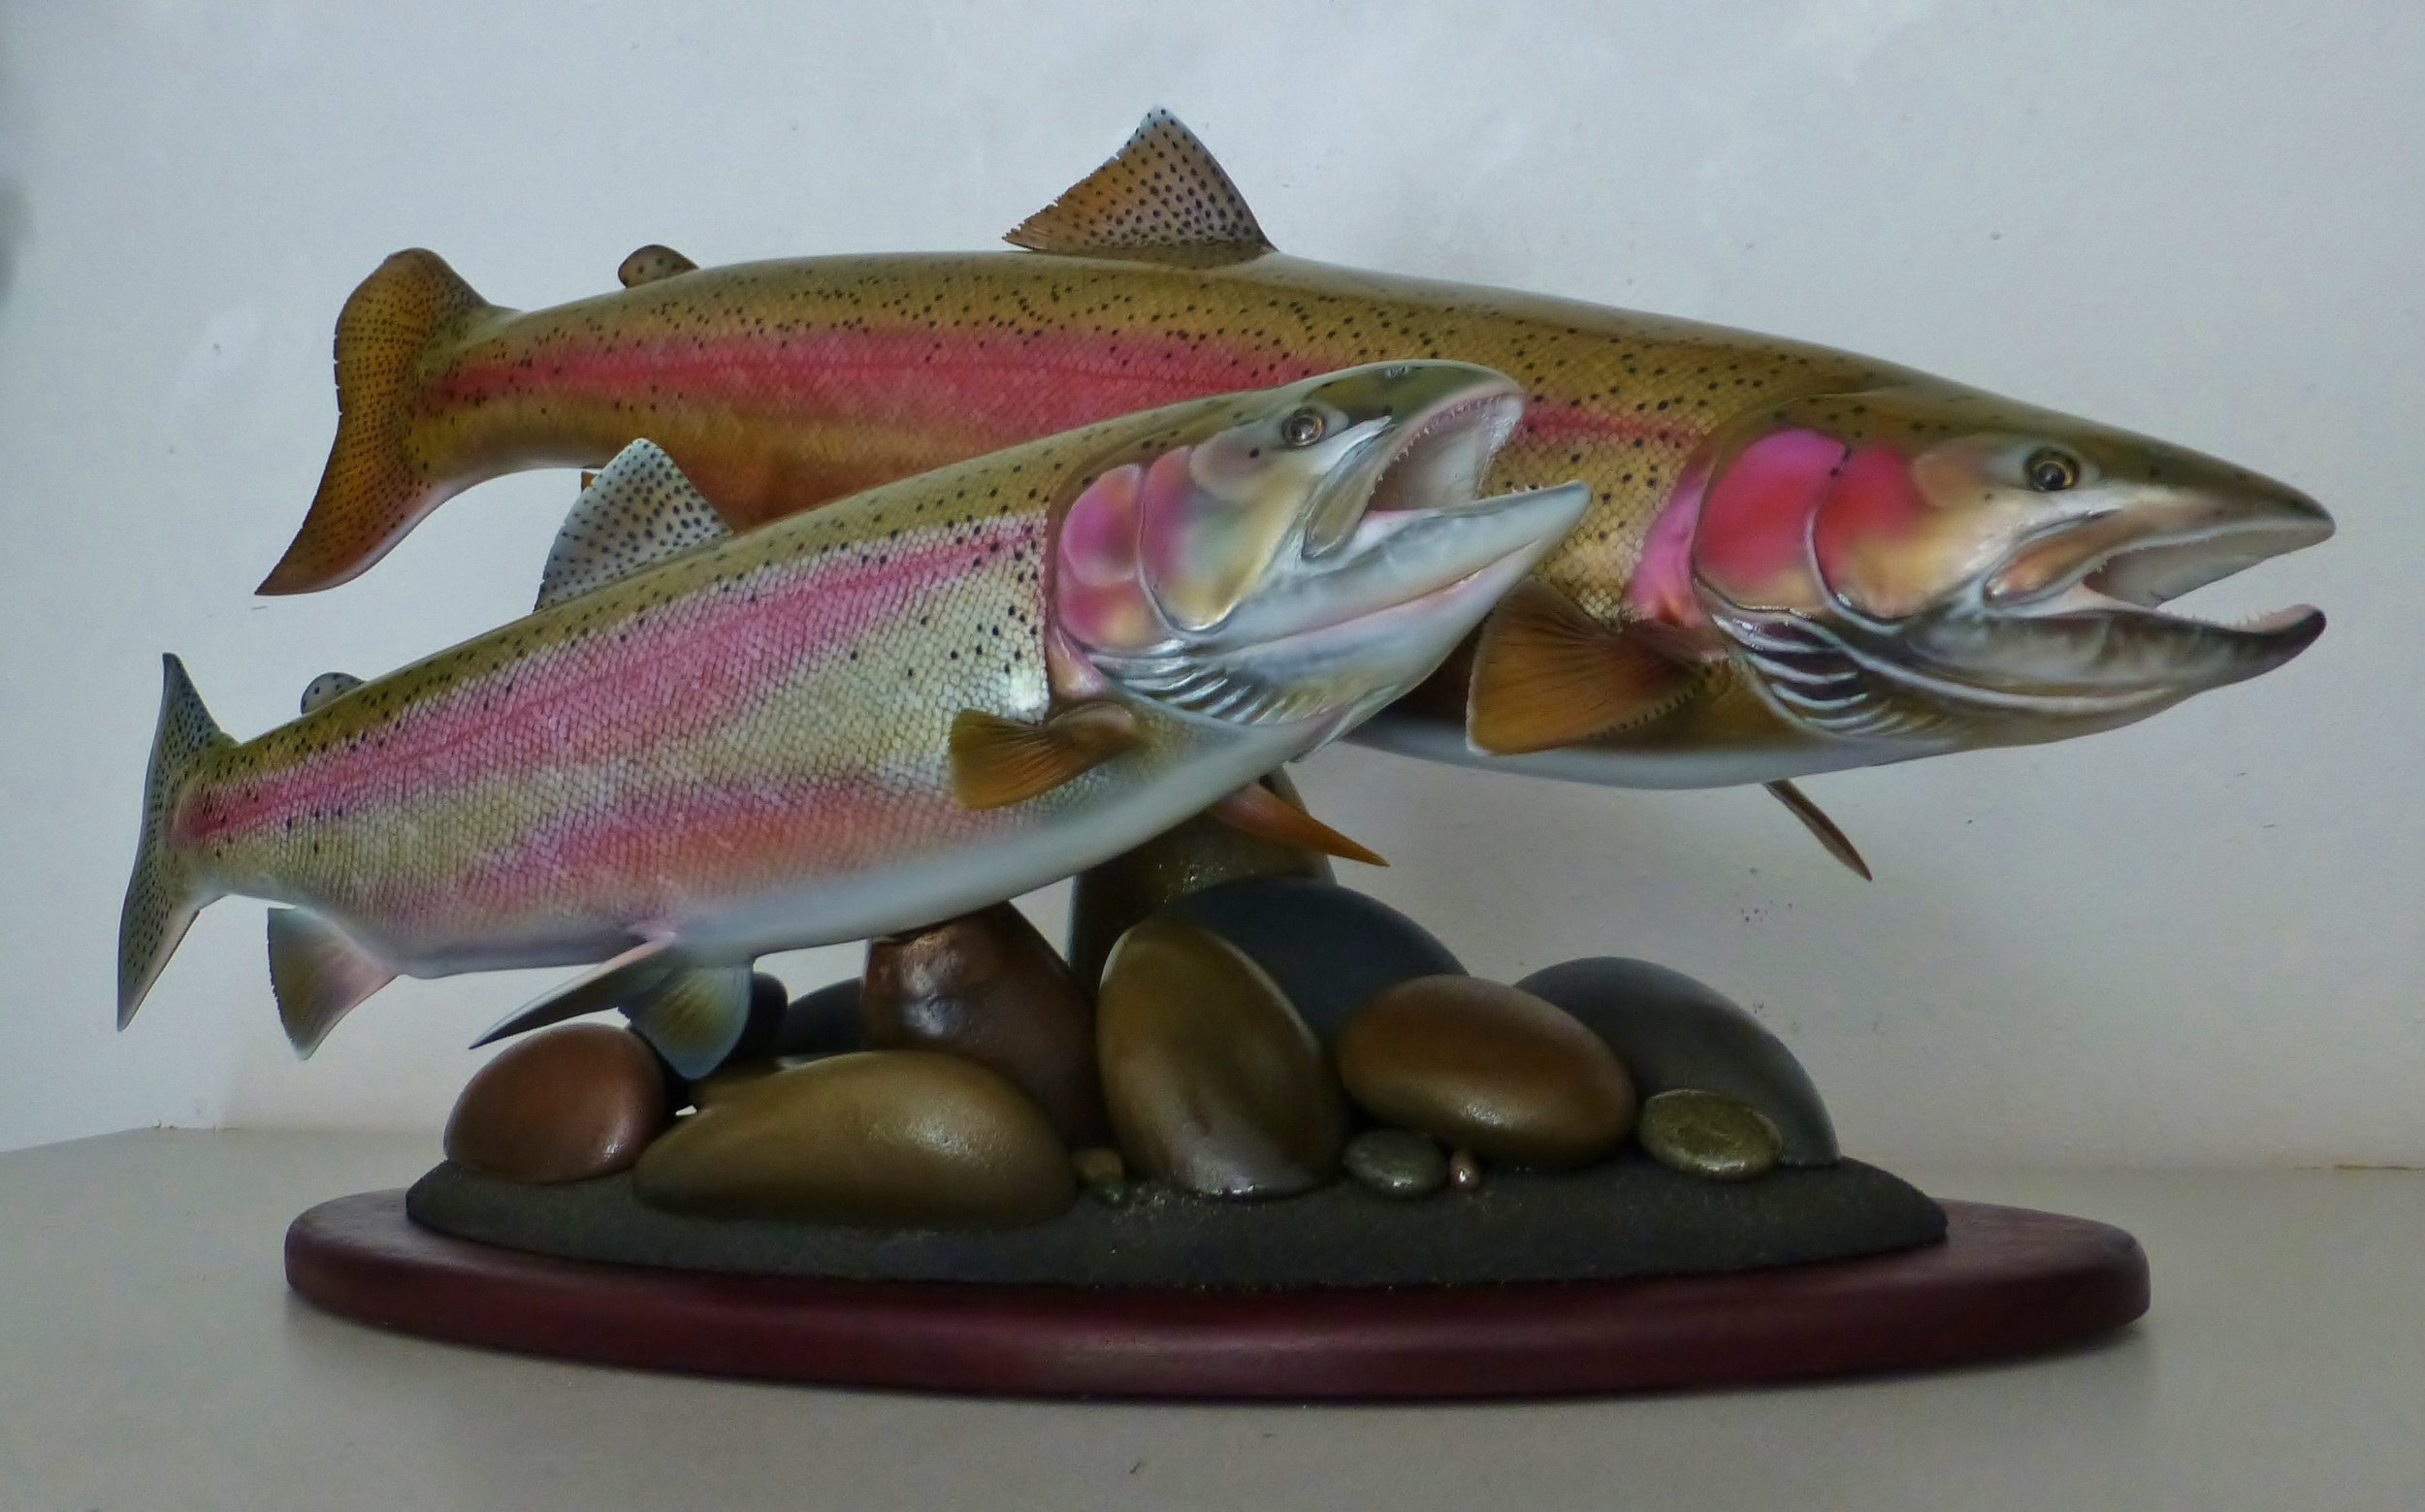 Idaho Seelhead fish art replica sculpture Luke Filmer Blackwater replicas